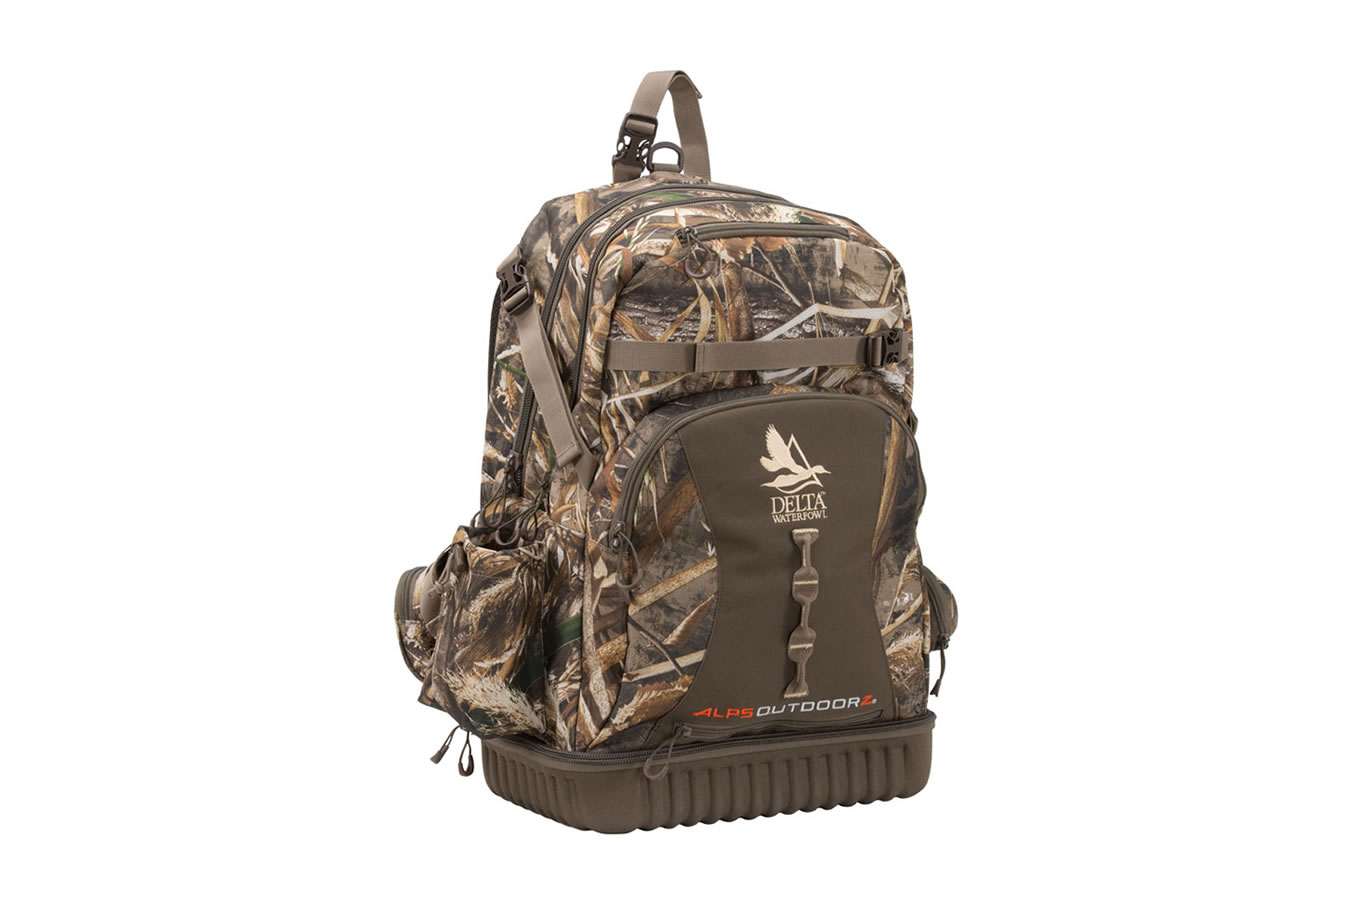 d8e05397d1a8 Alps Mountaineering Backpack Blind Bag